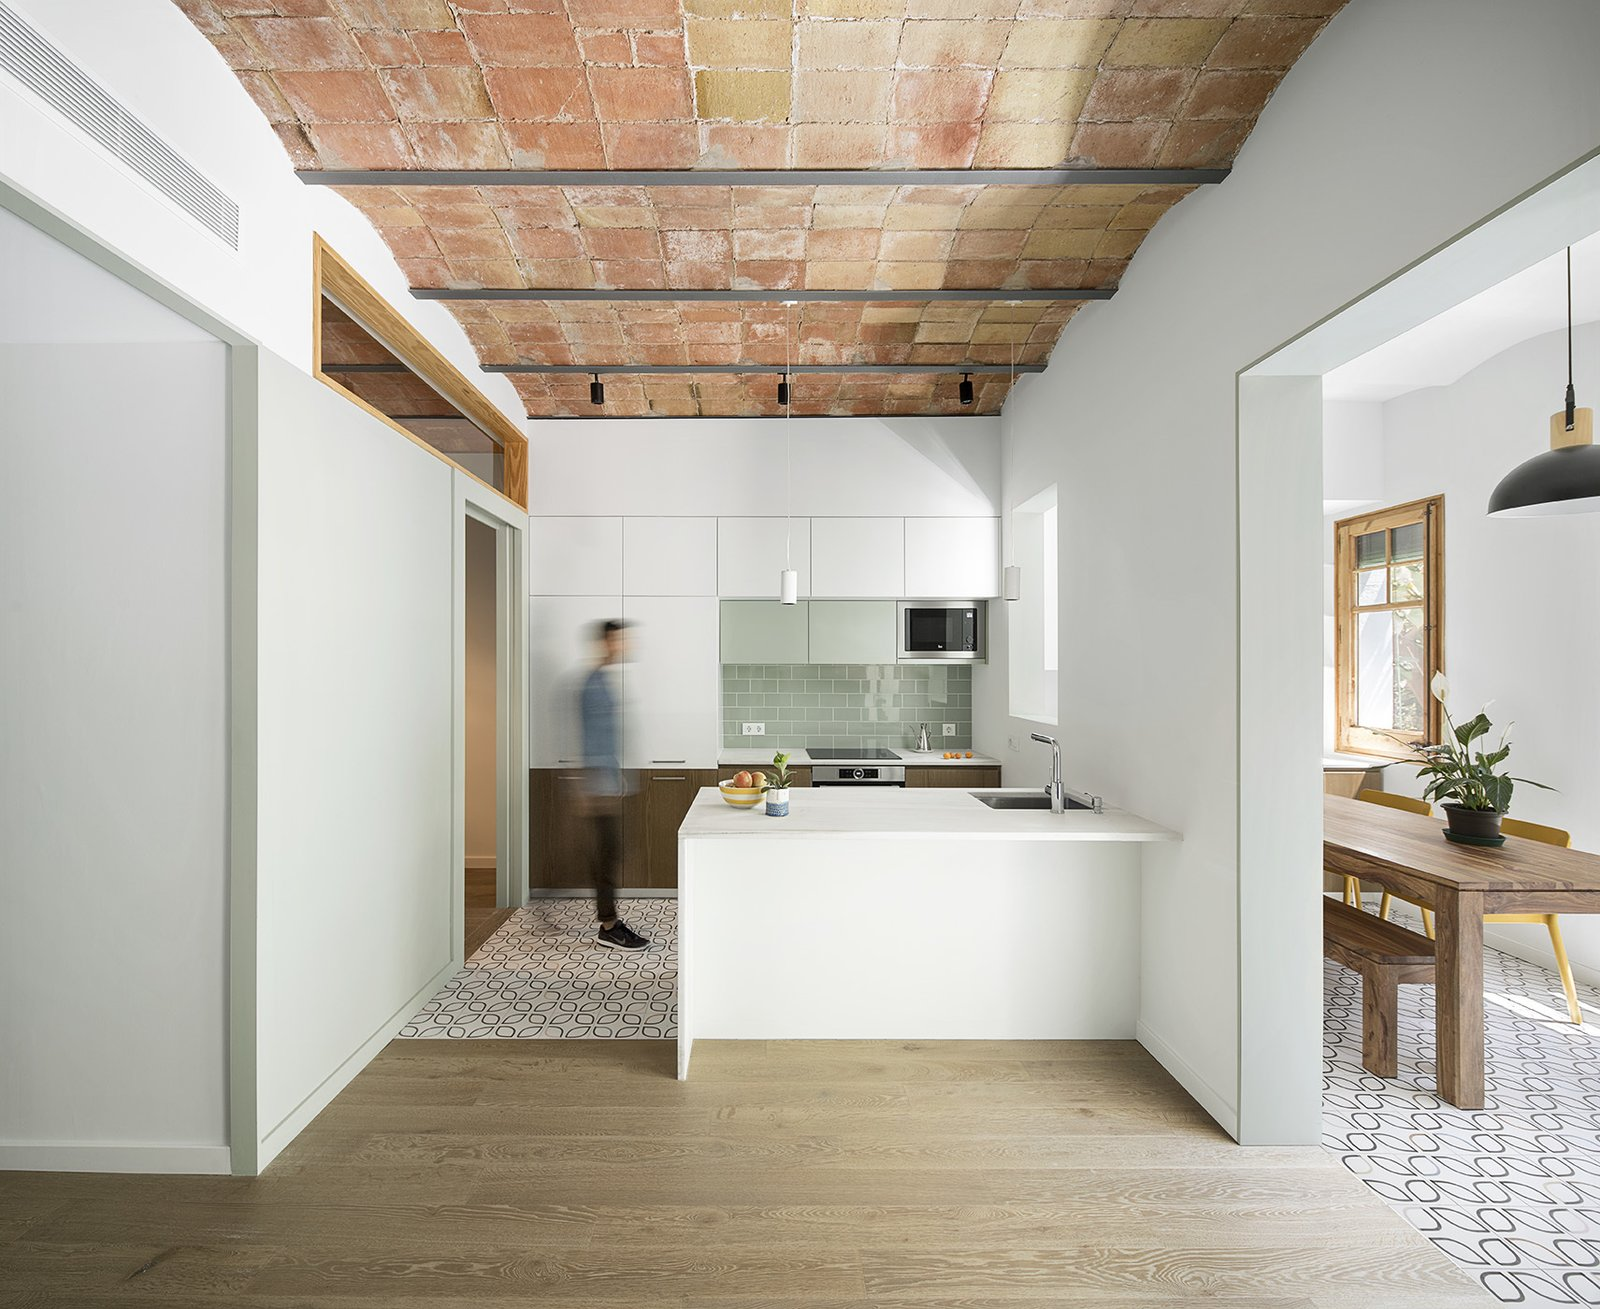 Barrel-Vaulted Ceilings Take This Barcelona Apartment to New Heights